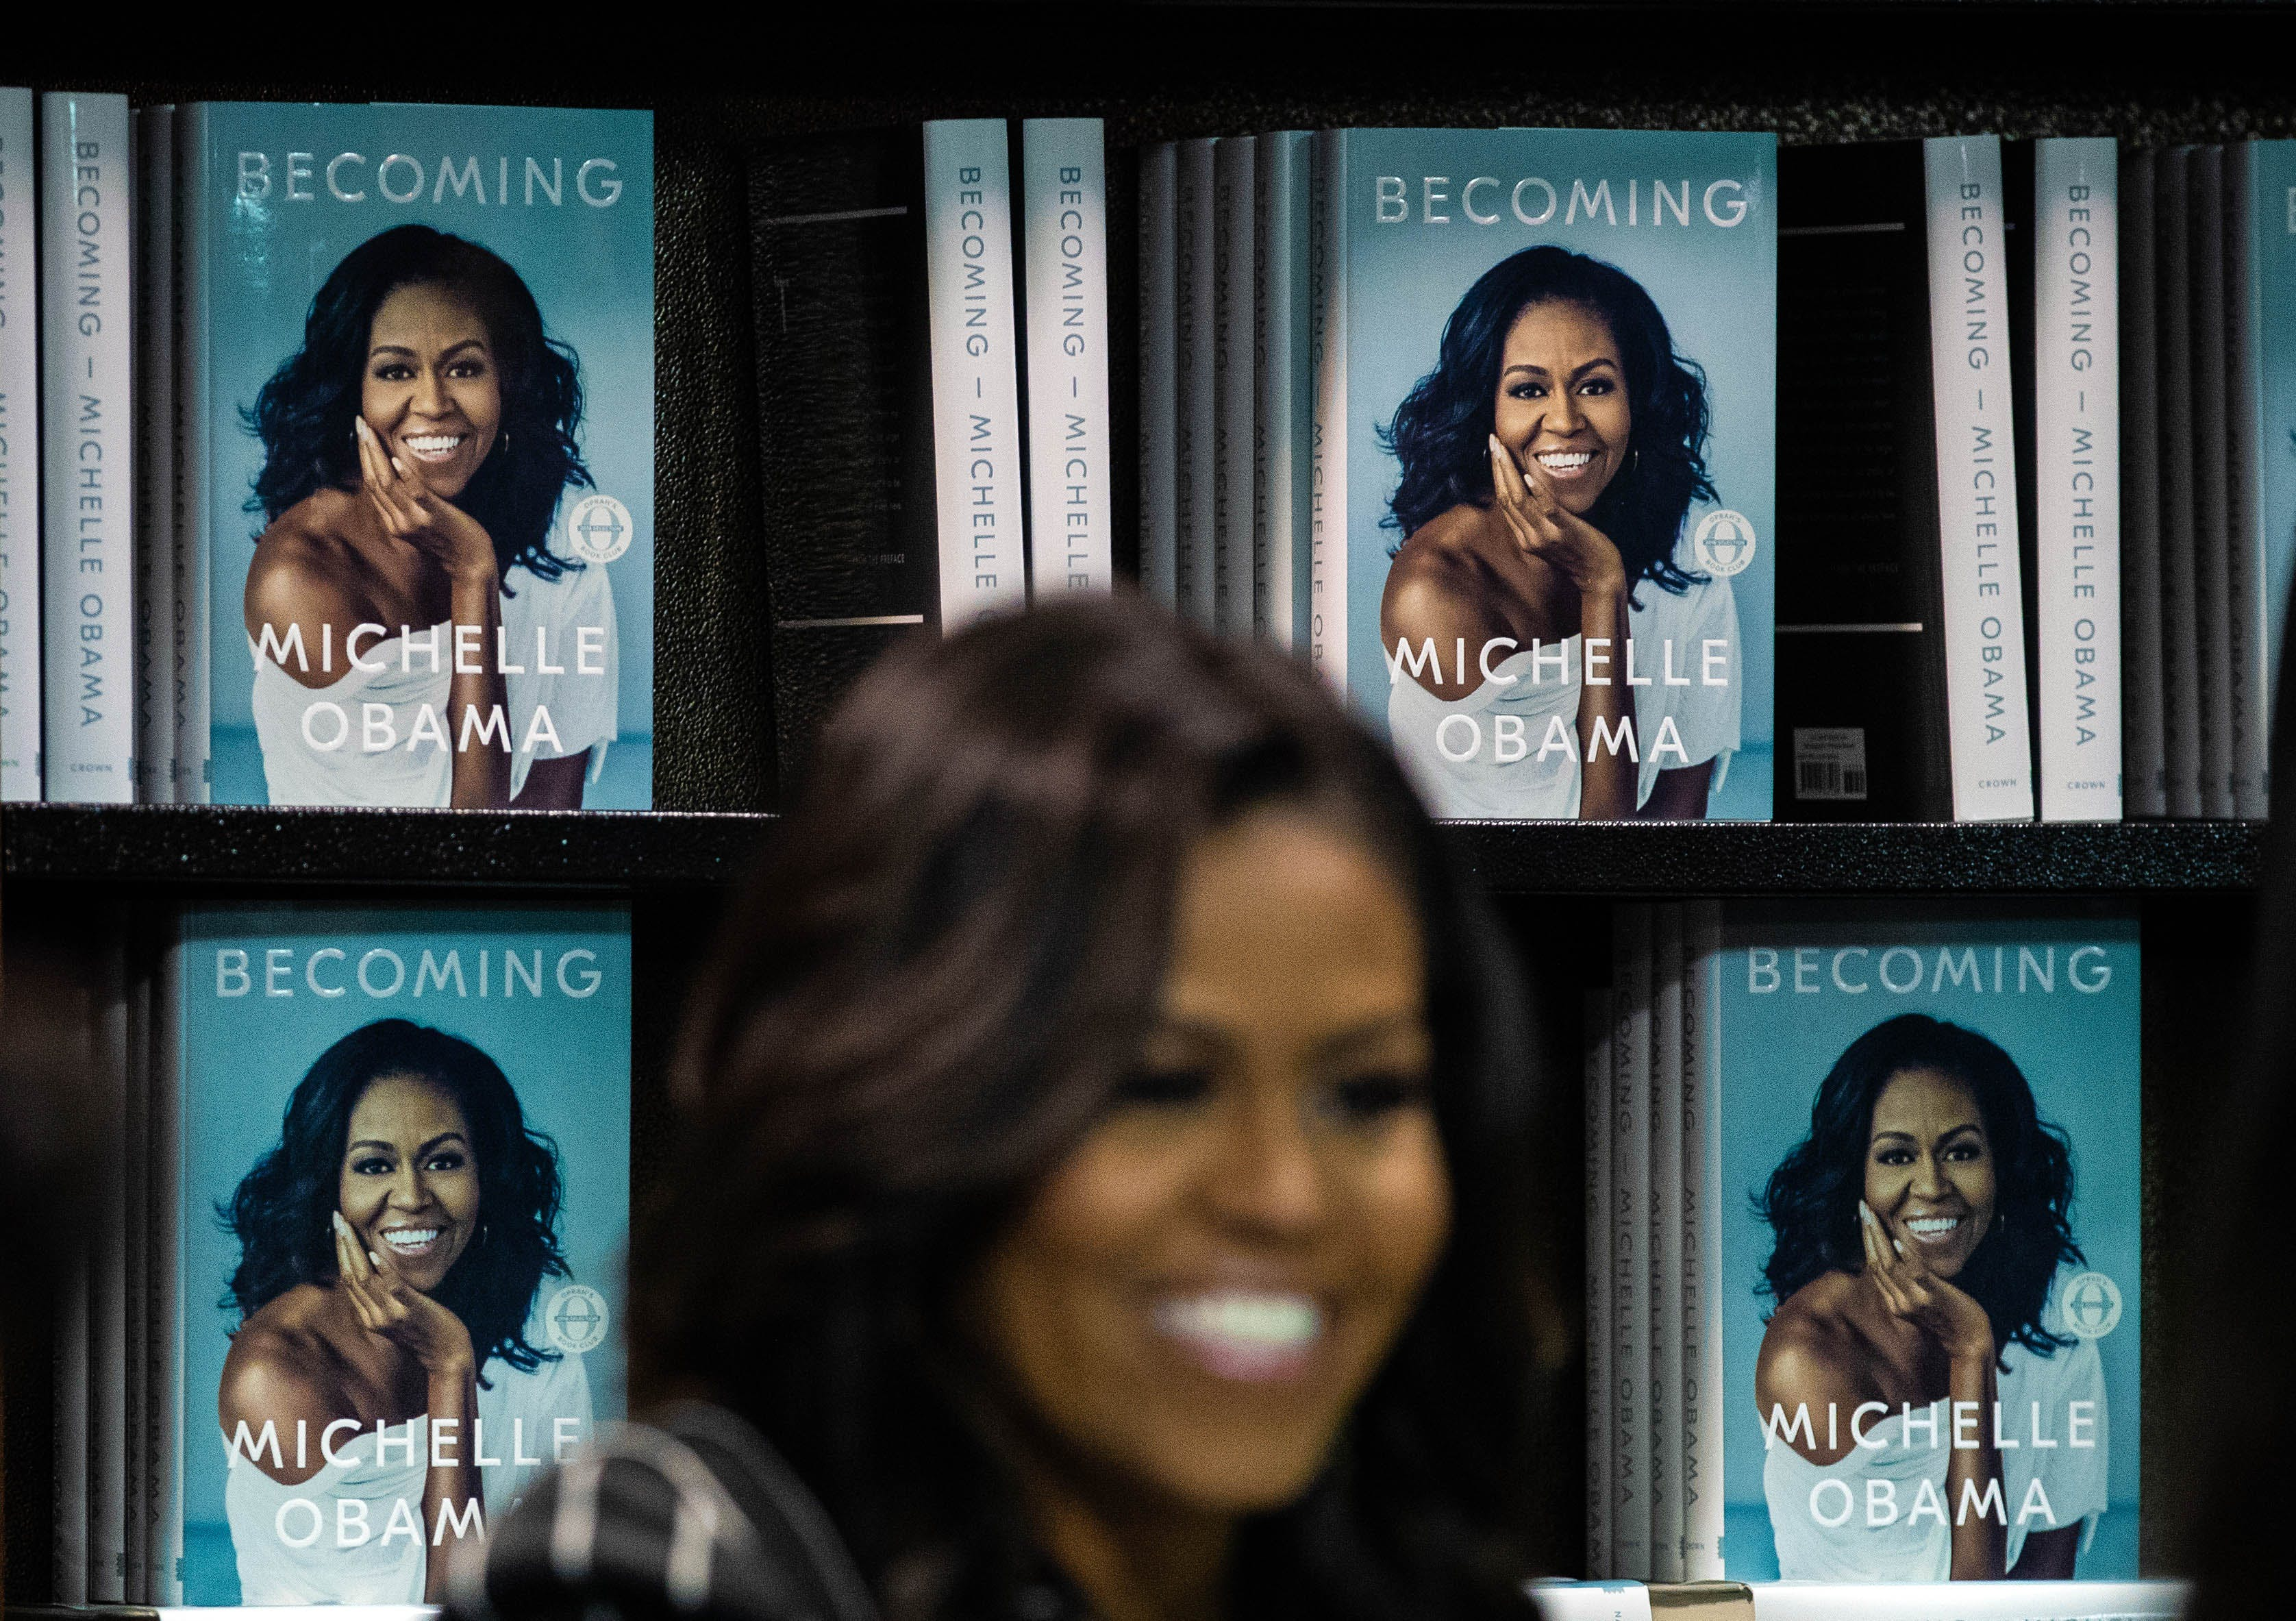 Michelle Obama Opens Up About Using Cannabis In New Memoir 2 Add Michelle Obama to List of Weed Lovers; Her New Memoir Says So